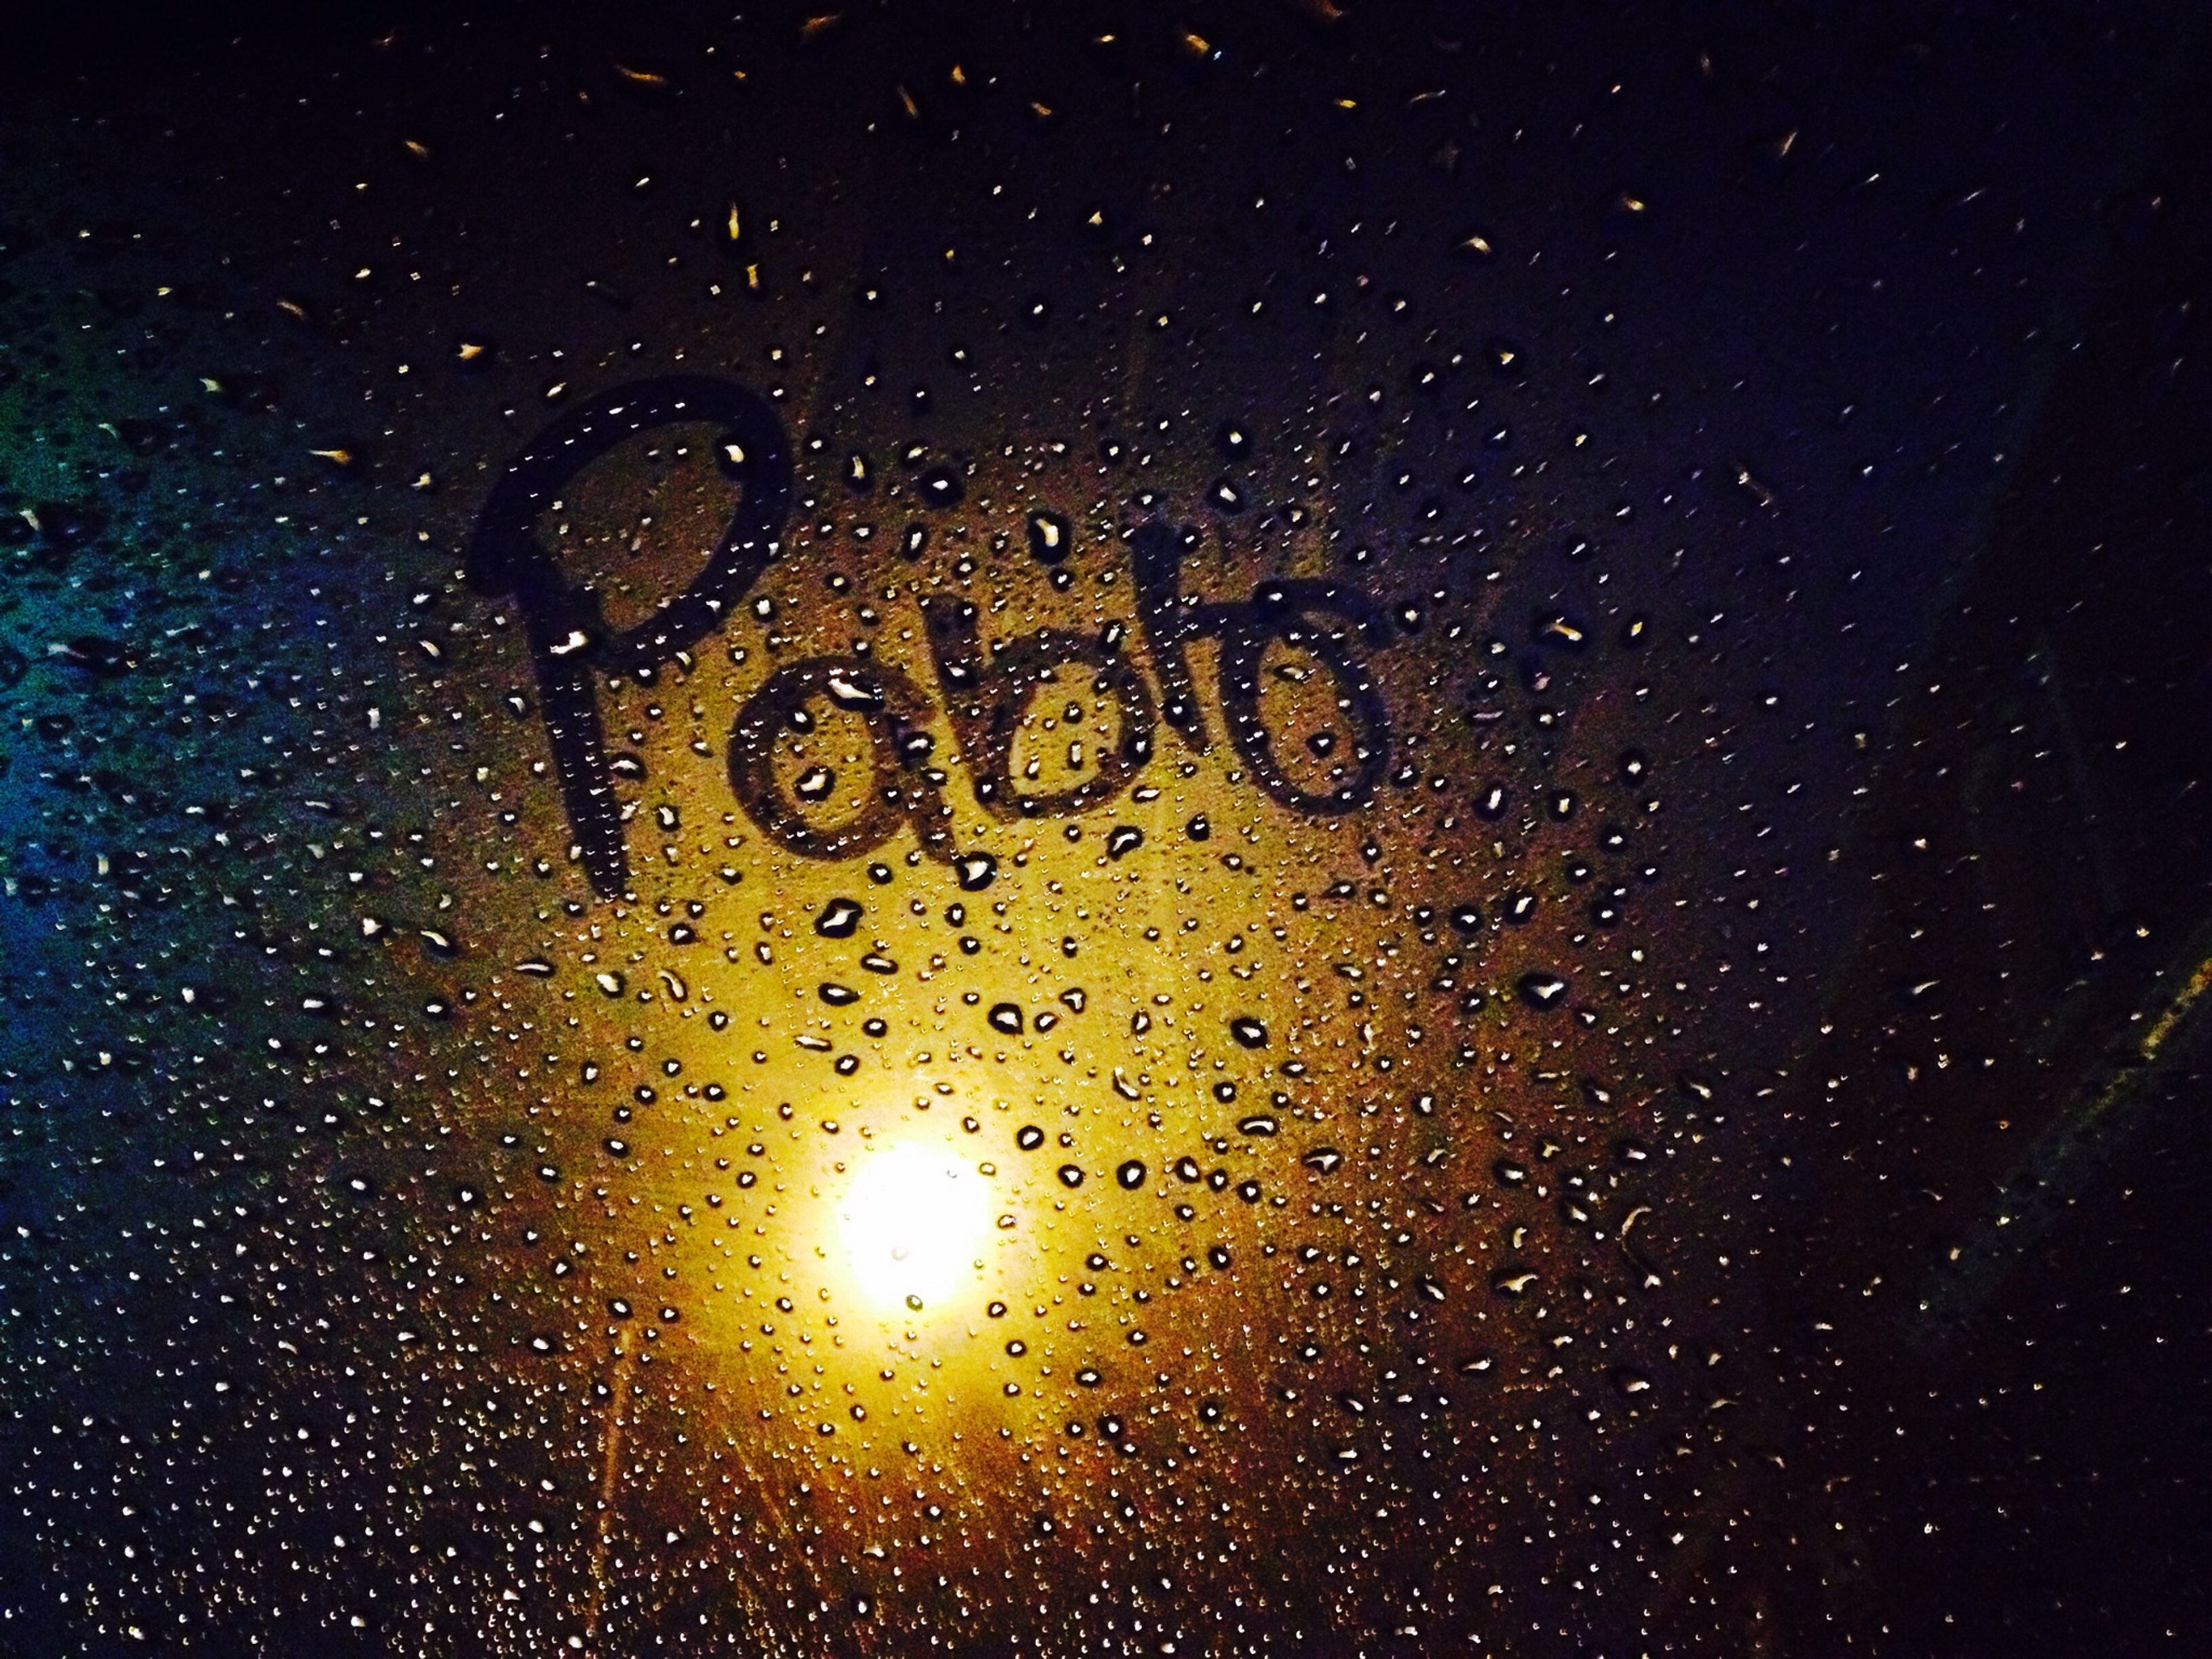 night, indoors, full frame, wet, backgrounds, drop, close-up, glass - material, rain, water, transparent, dark, window, illuminated, no people, communication, raindrop, text, astronomy, western script